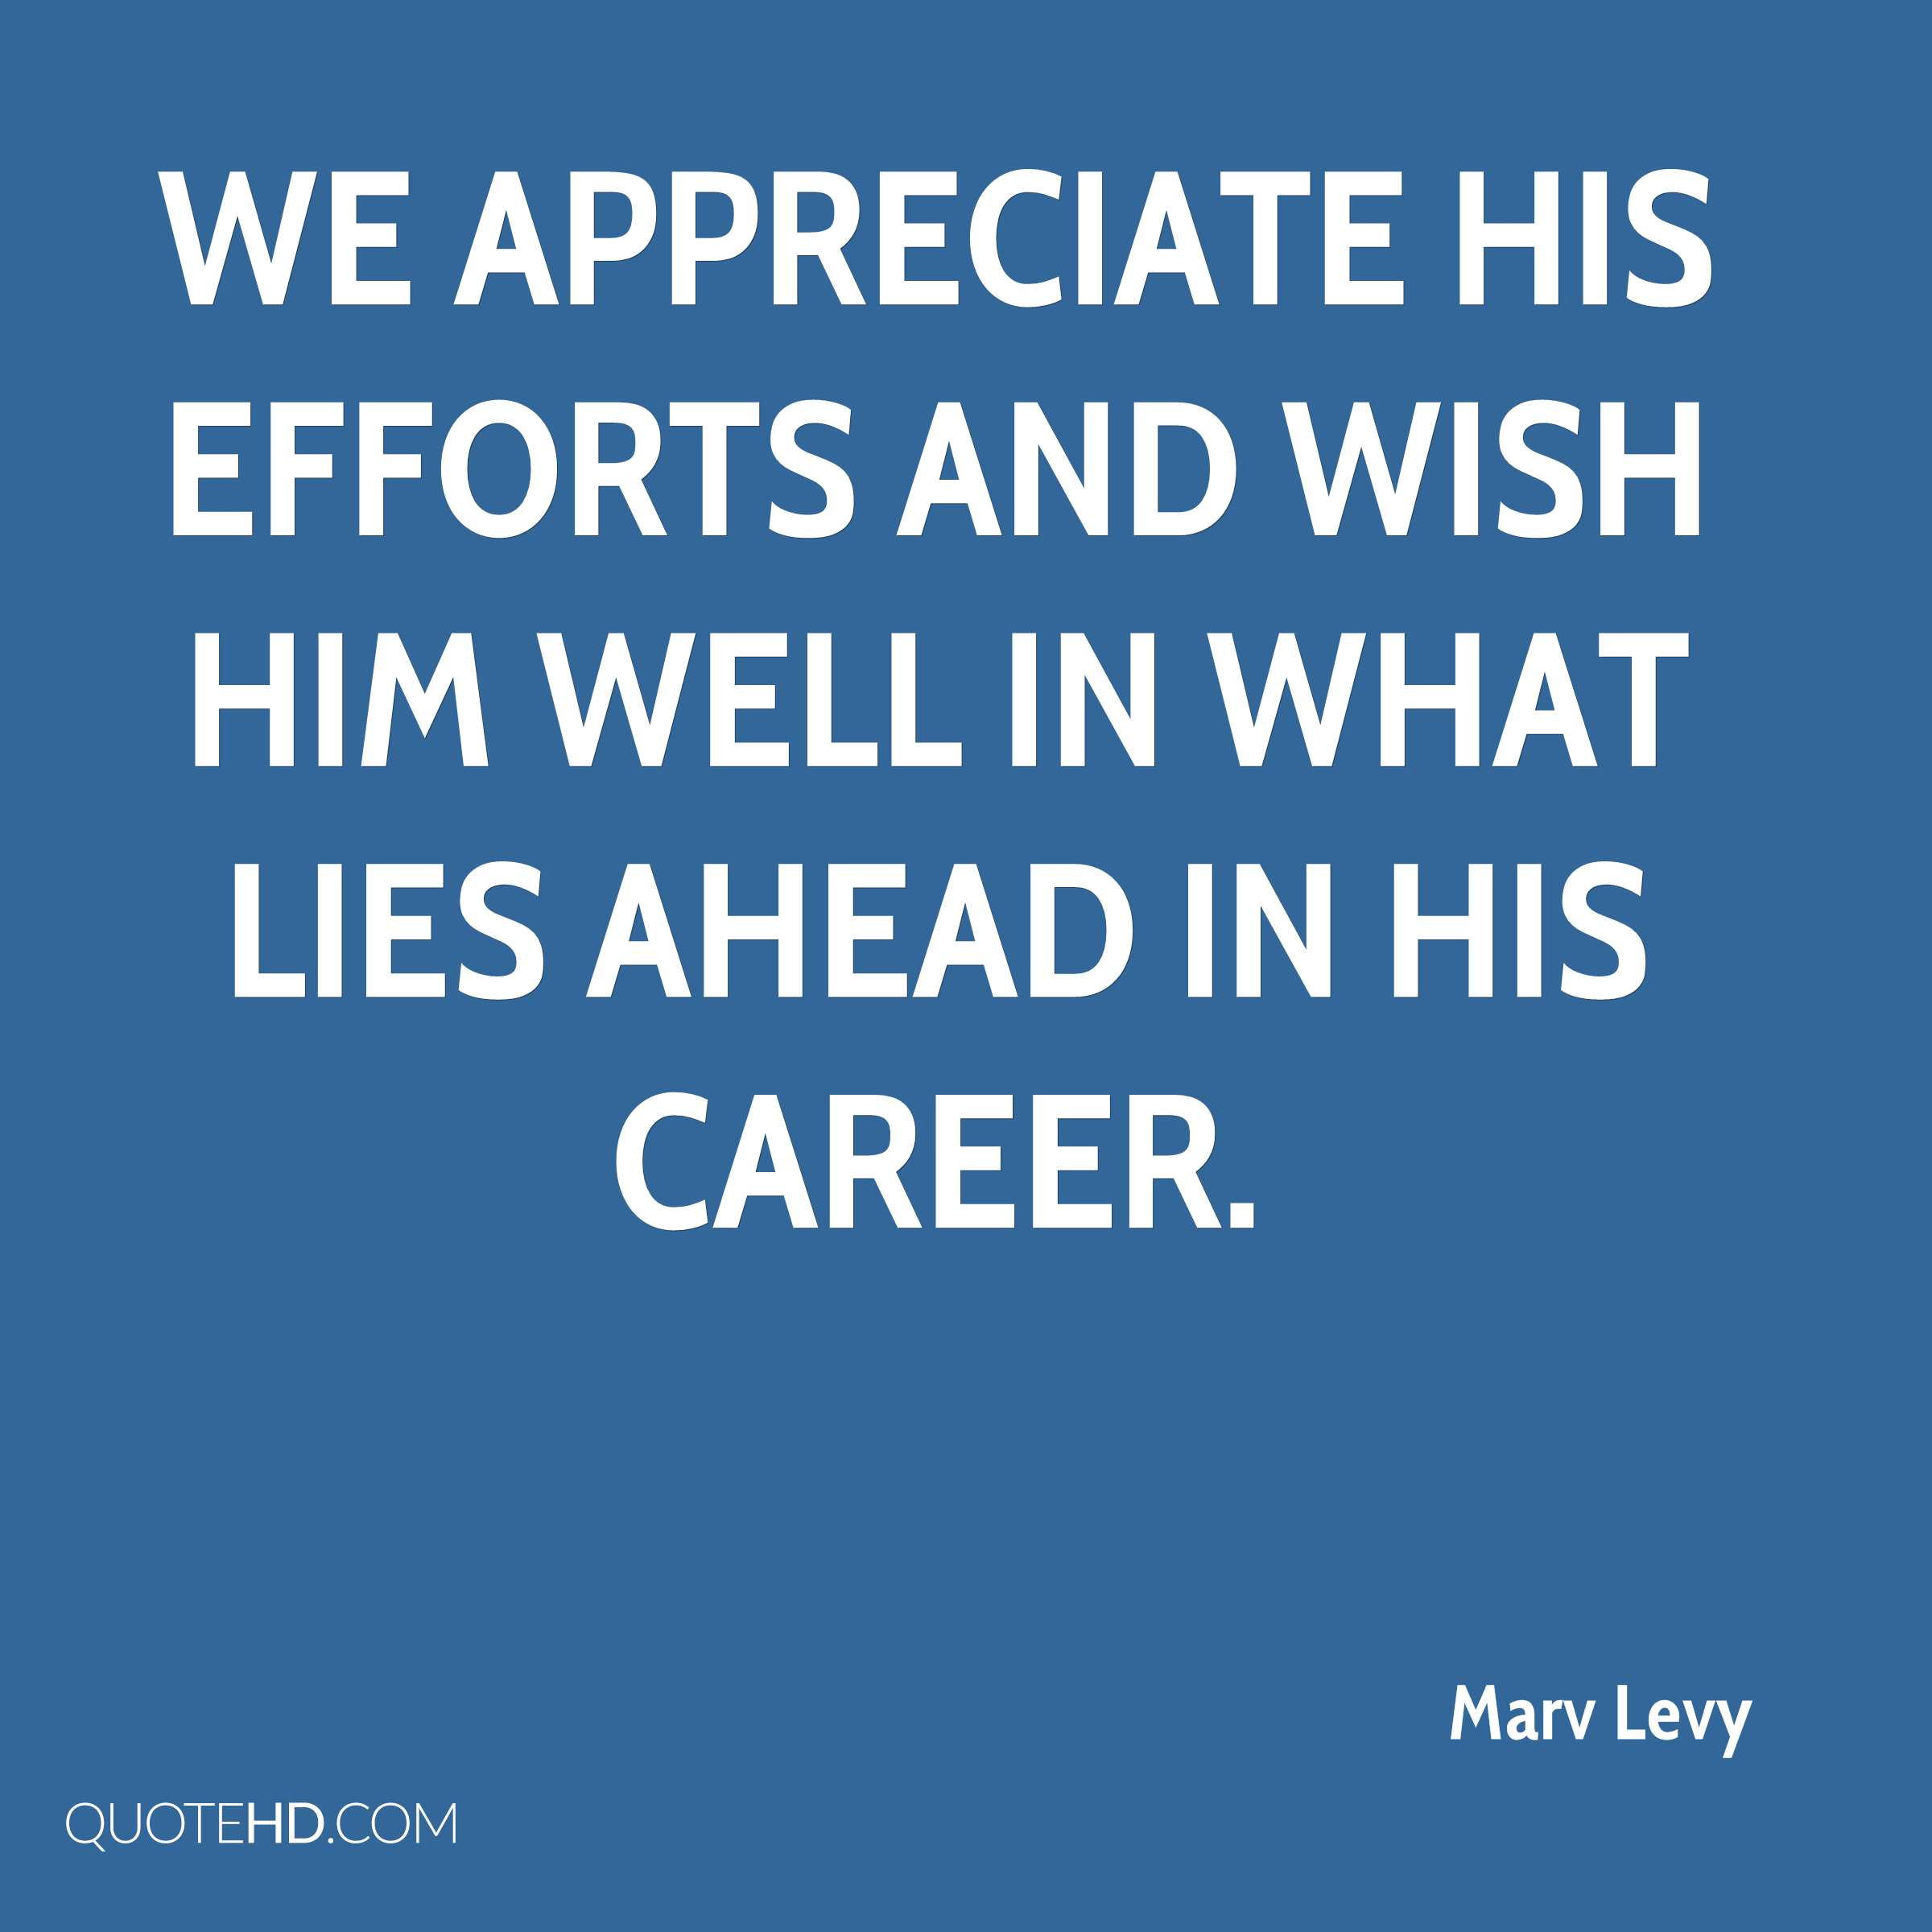 Marv Levy Quotes | QuoteHD